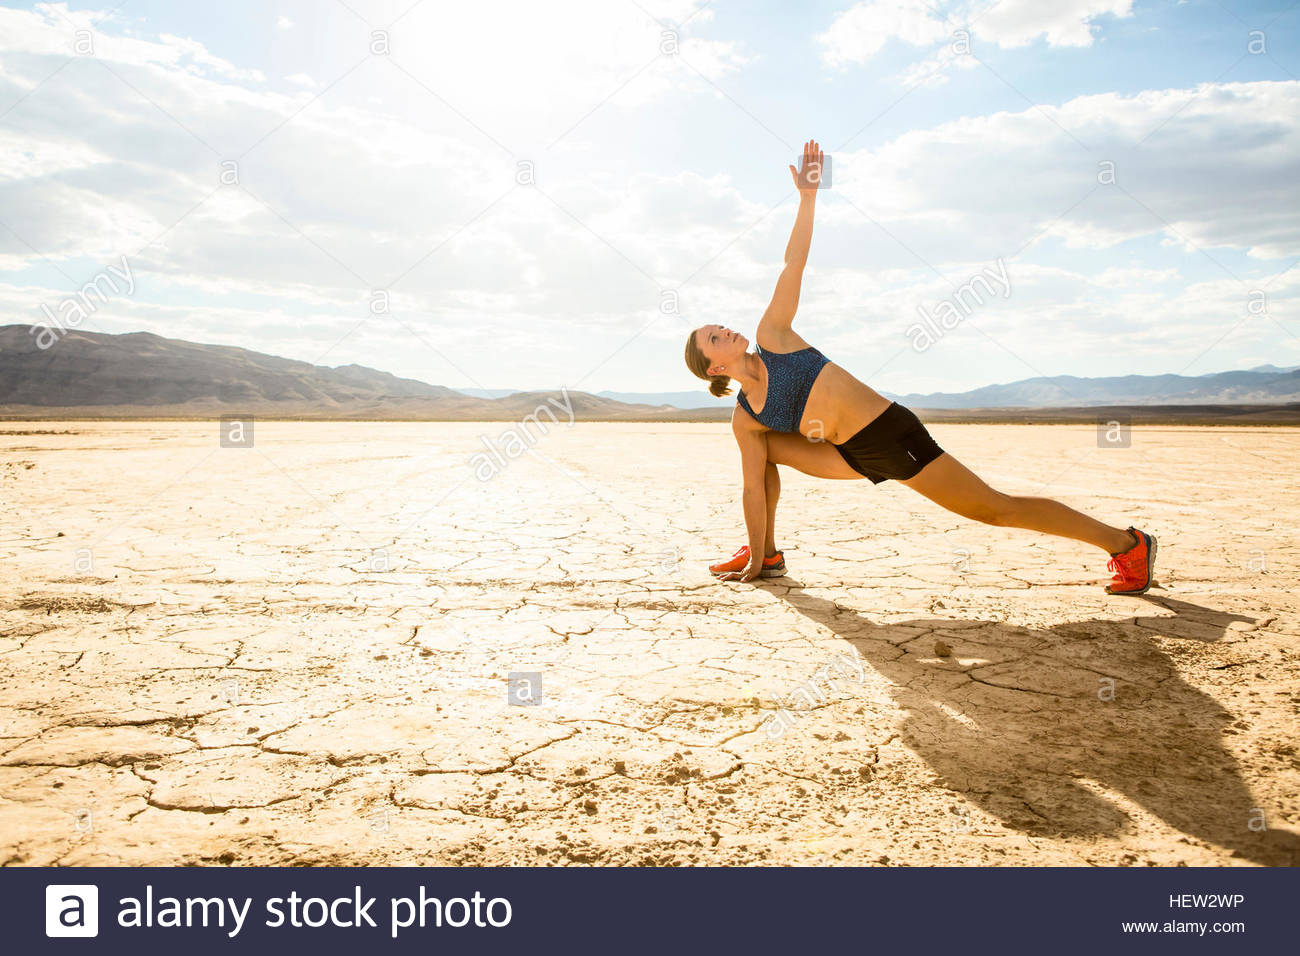 Runner in side plank pose in desert, Las Vegas, Nevada, USA - Stock Image